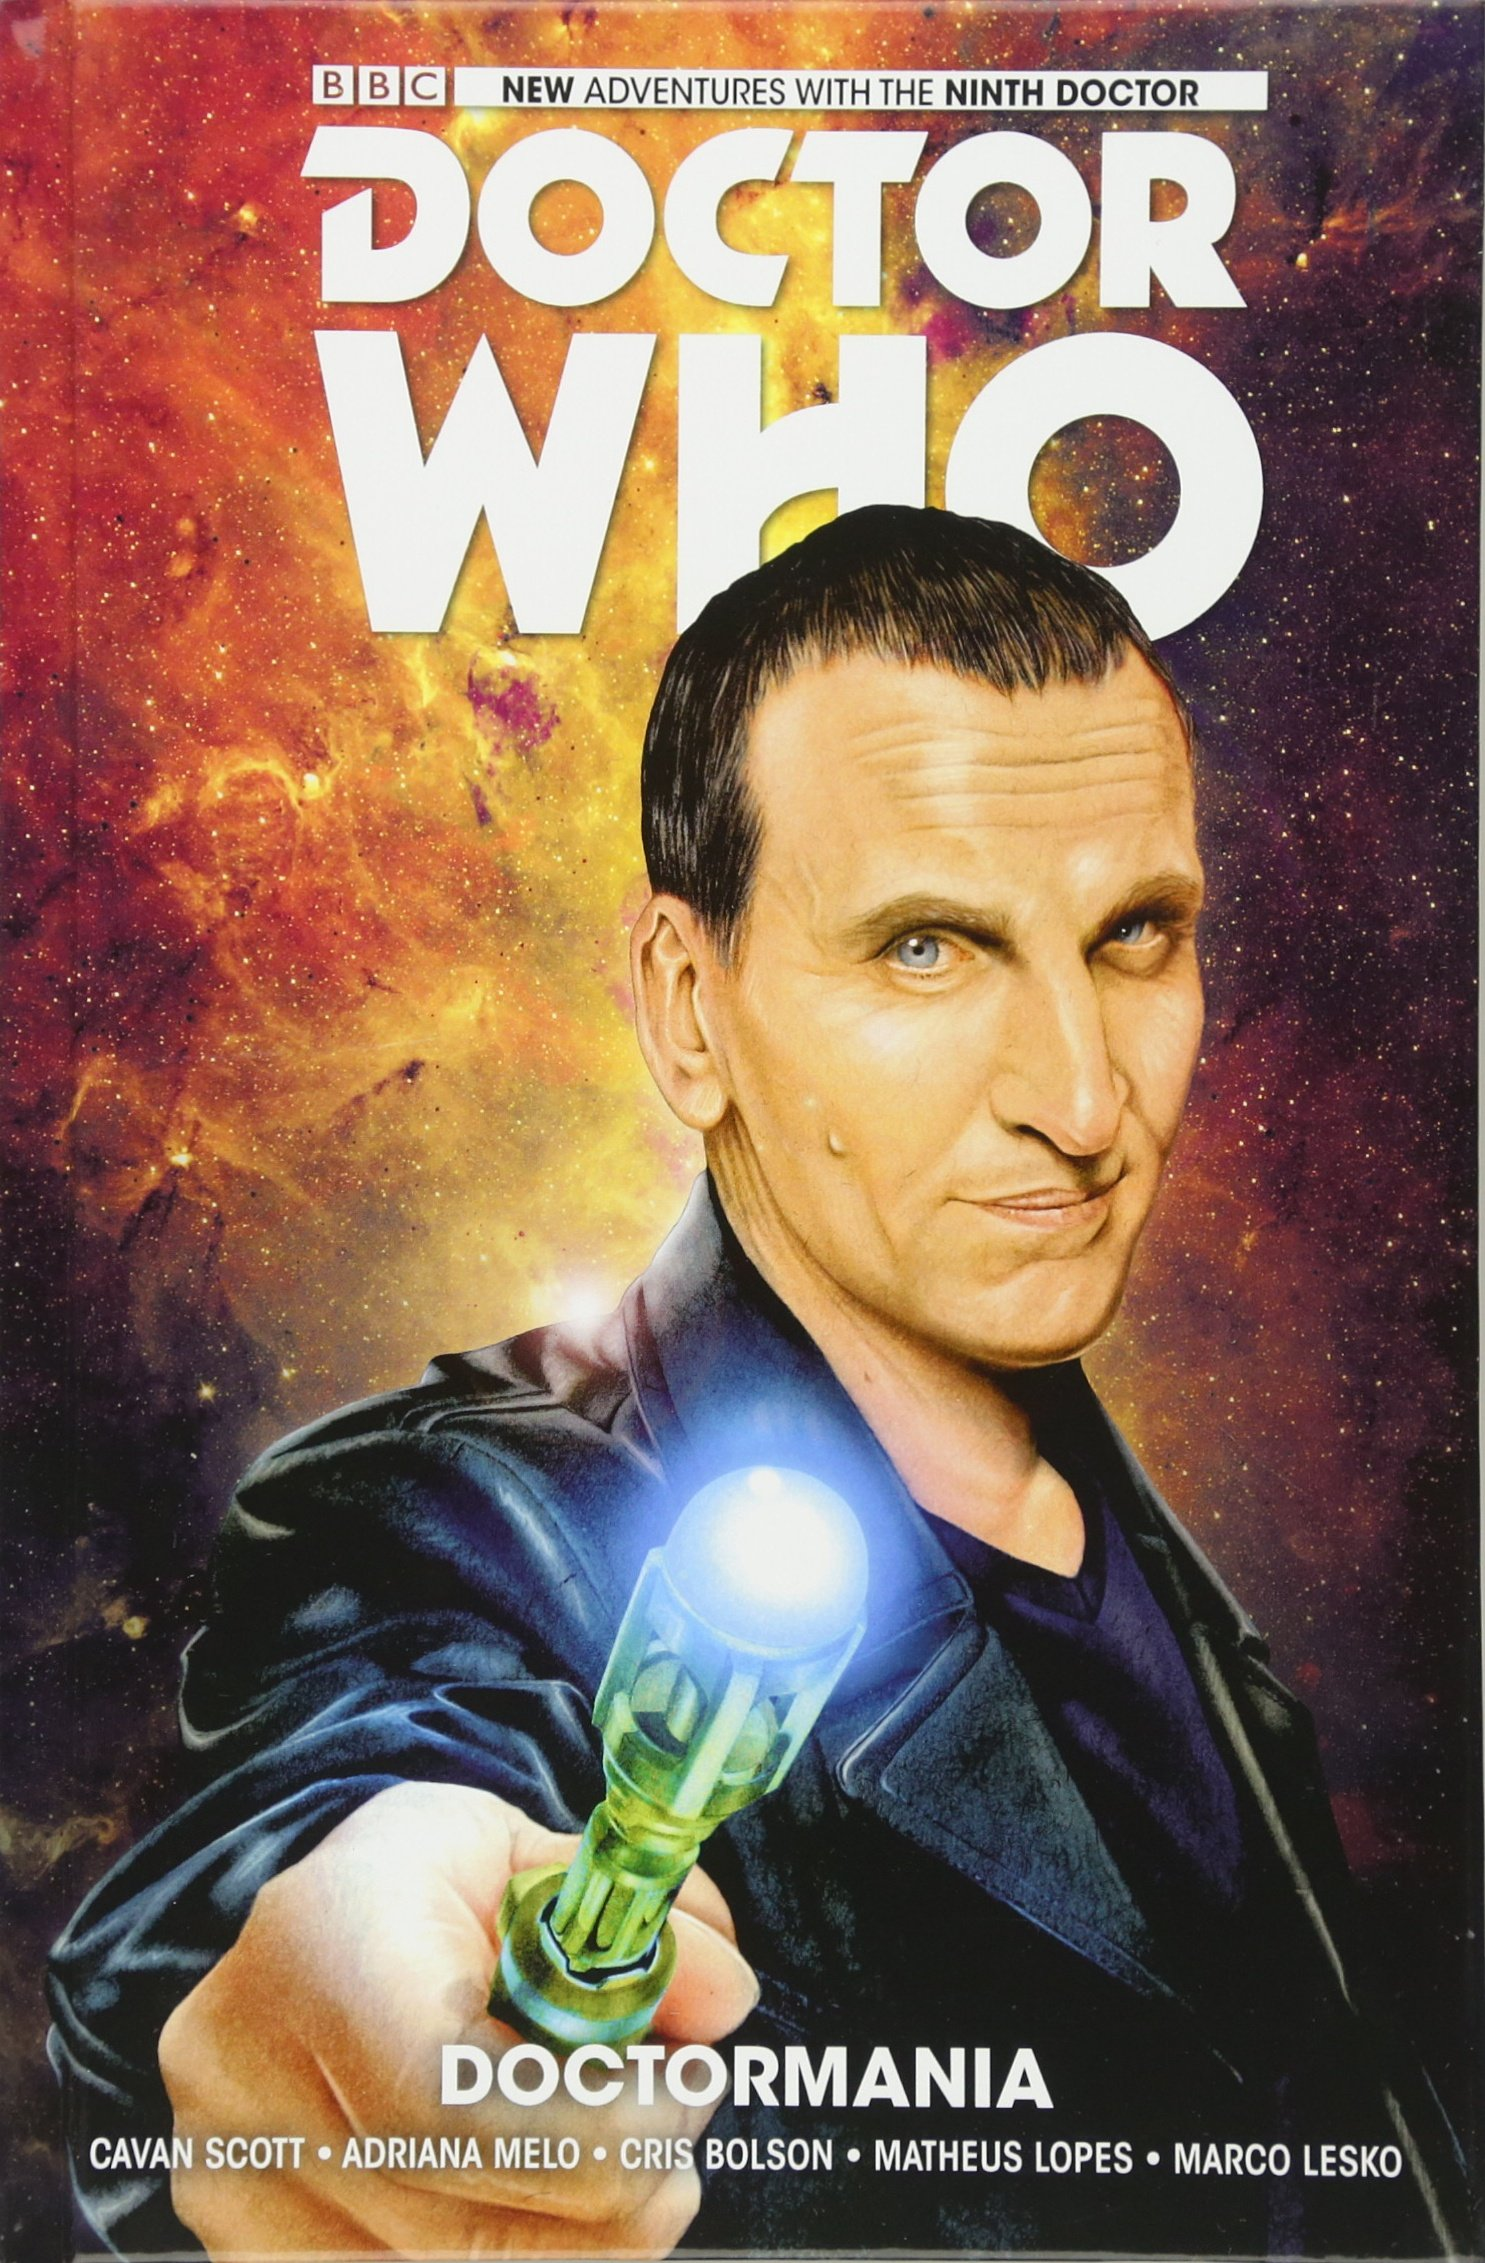 Doctor Who: The Ninth Doctor Volume 2 - Doctormania сарафаны doctor e сарафан